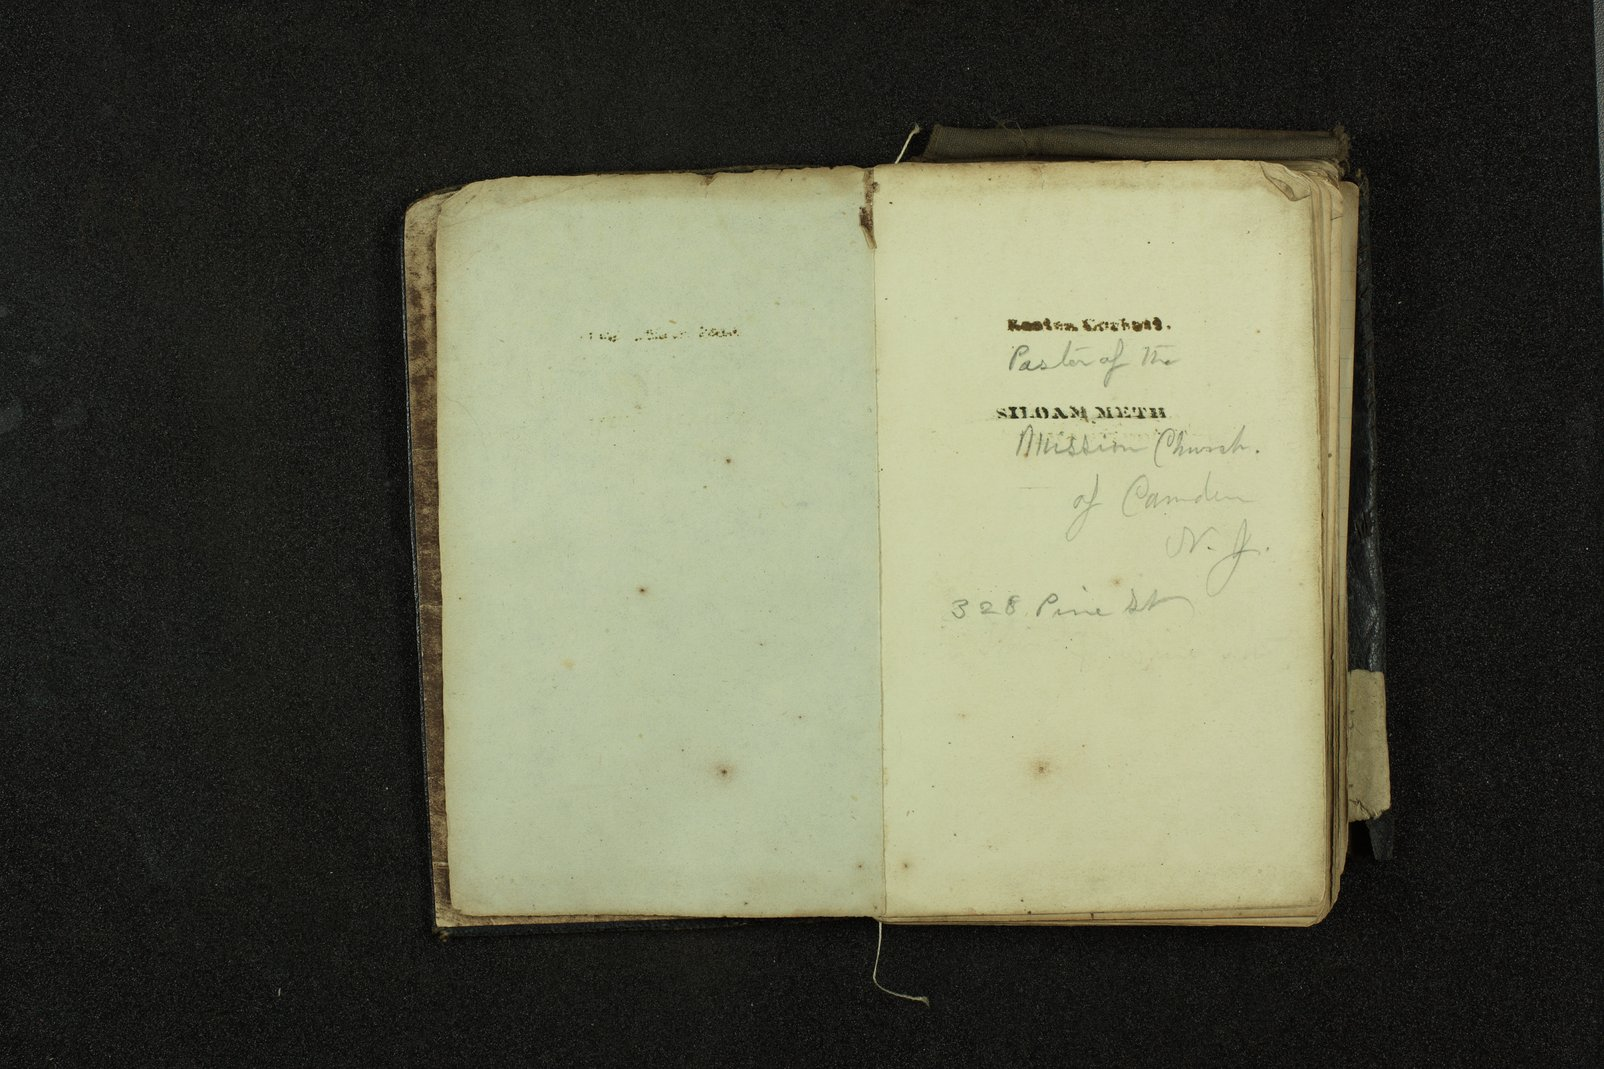 Clergyman's pocket diary and visiting book belonging to Boston Corbett - Notes